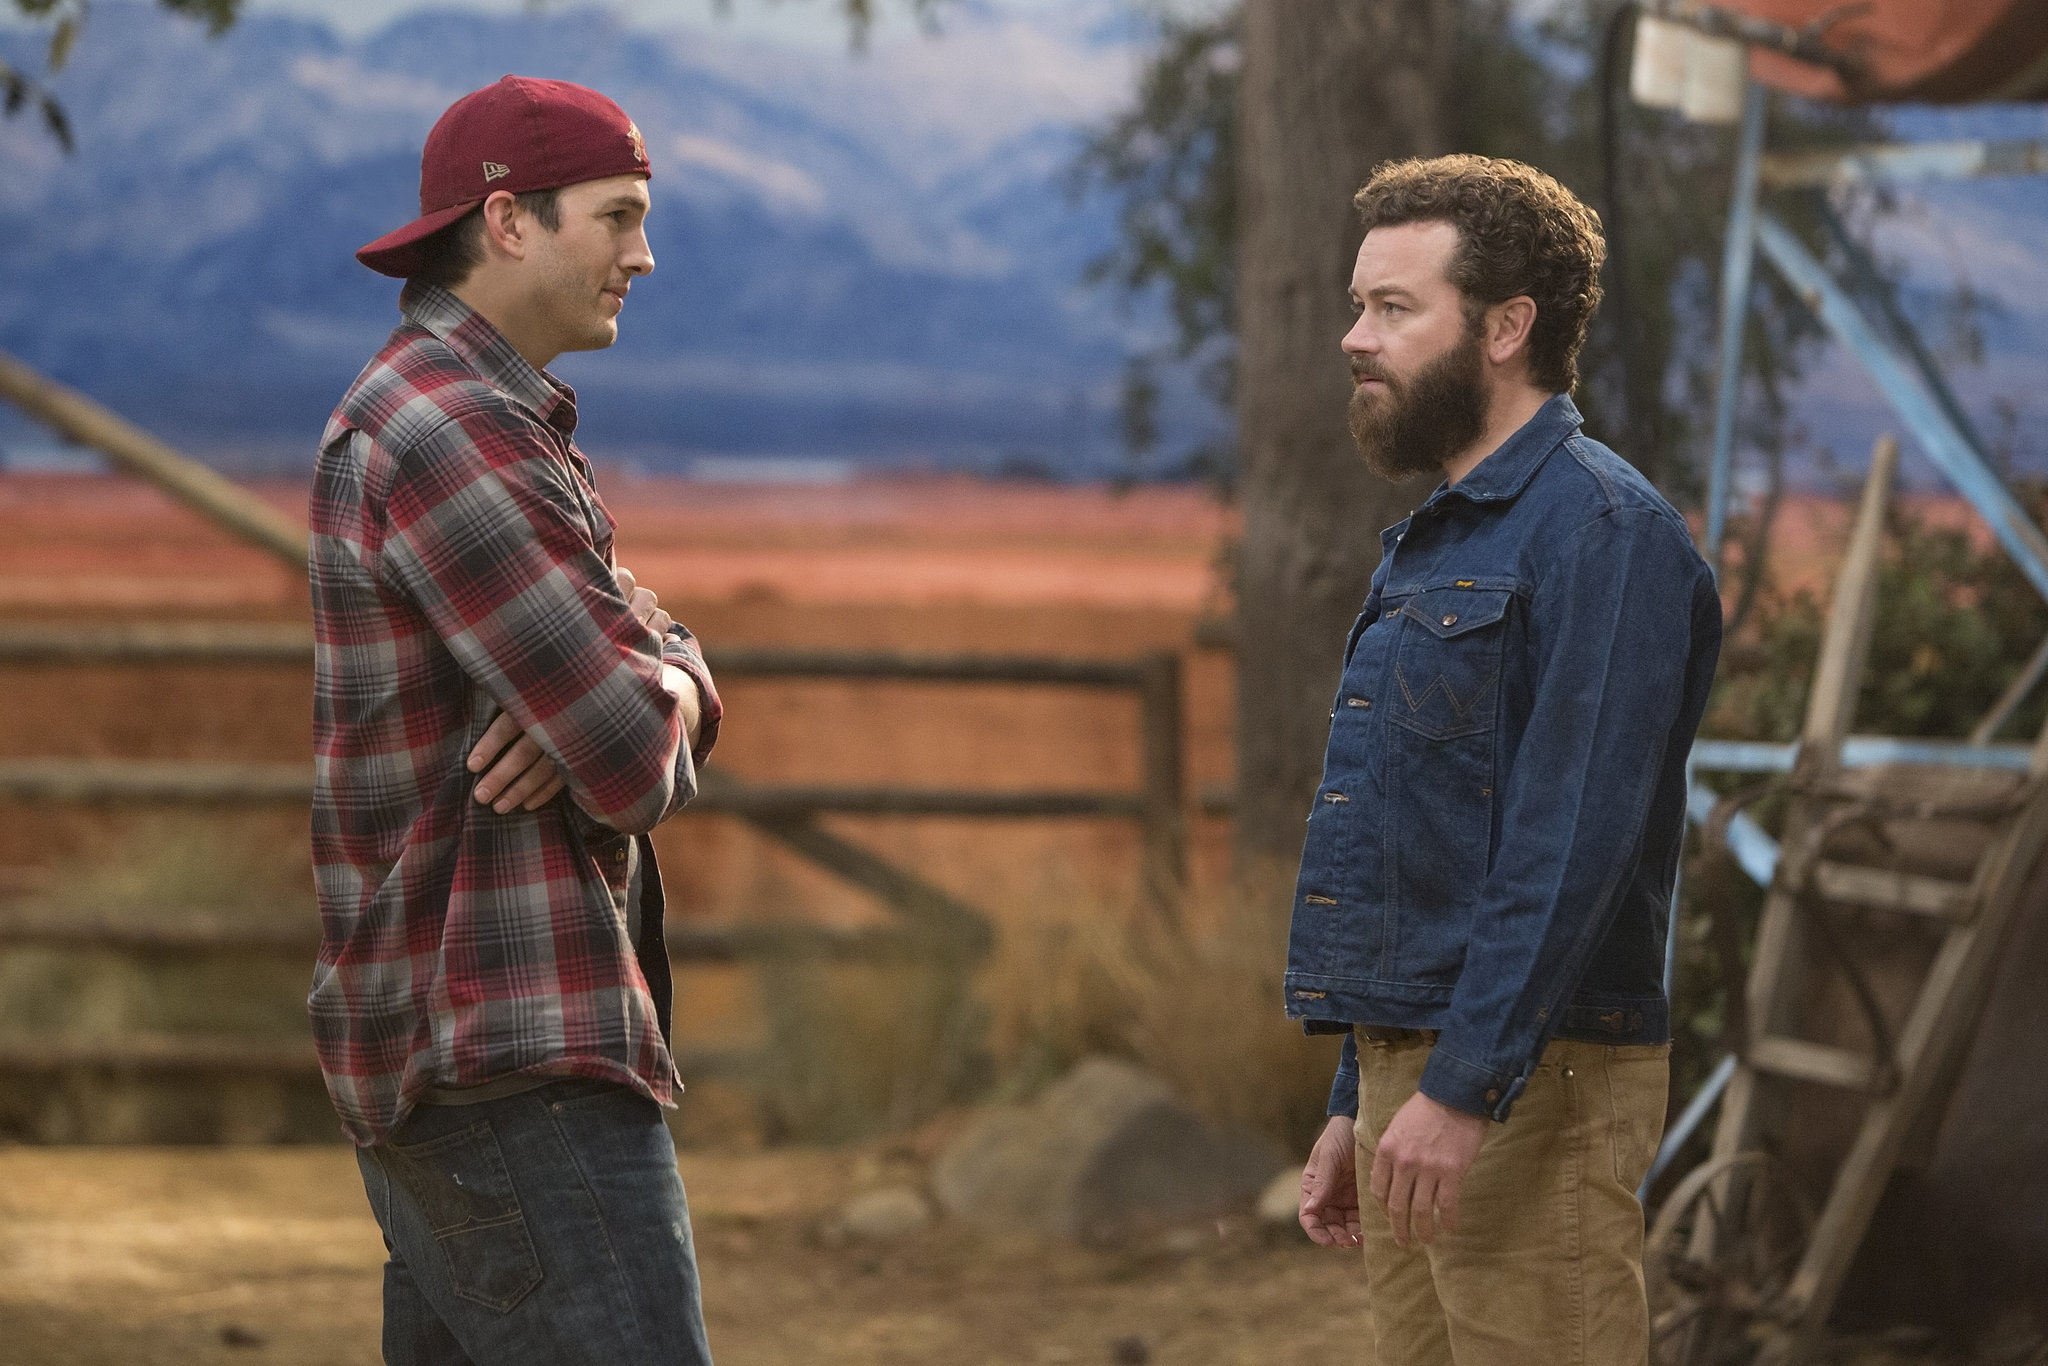 Ashton Kutcher and Danny Masterson talk to each other outside in The Ranch